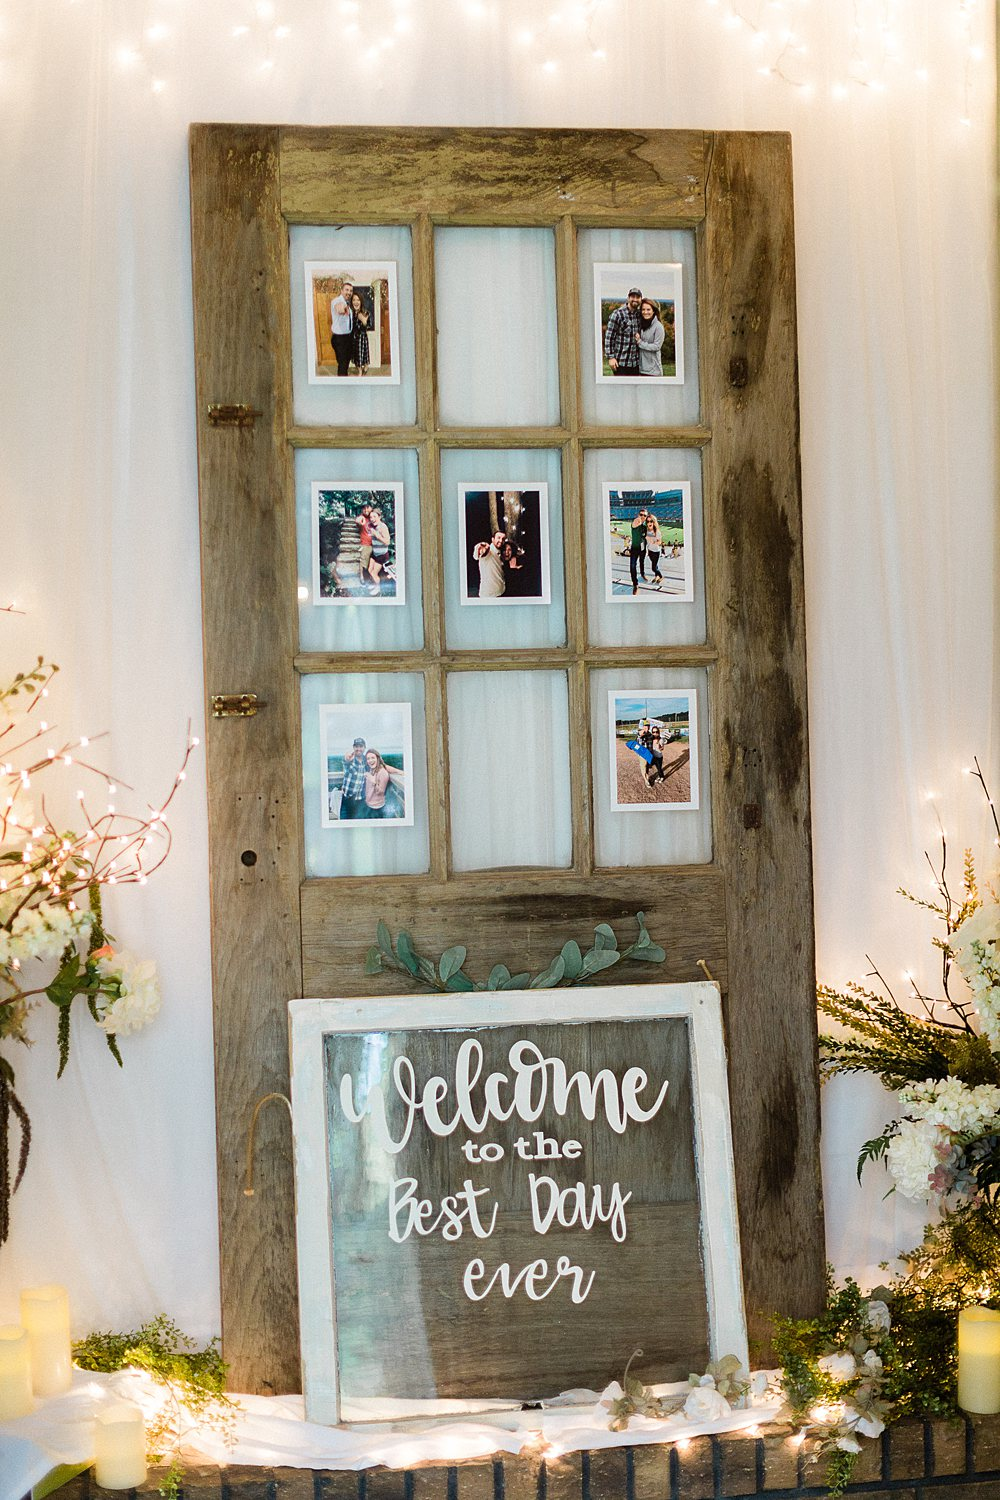 North_Central_Wisconsin_Event_Wedding_Venues_Fall_Weddings_The_Bailiwick_Venue_James-Stokes-Photography083.jpg